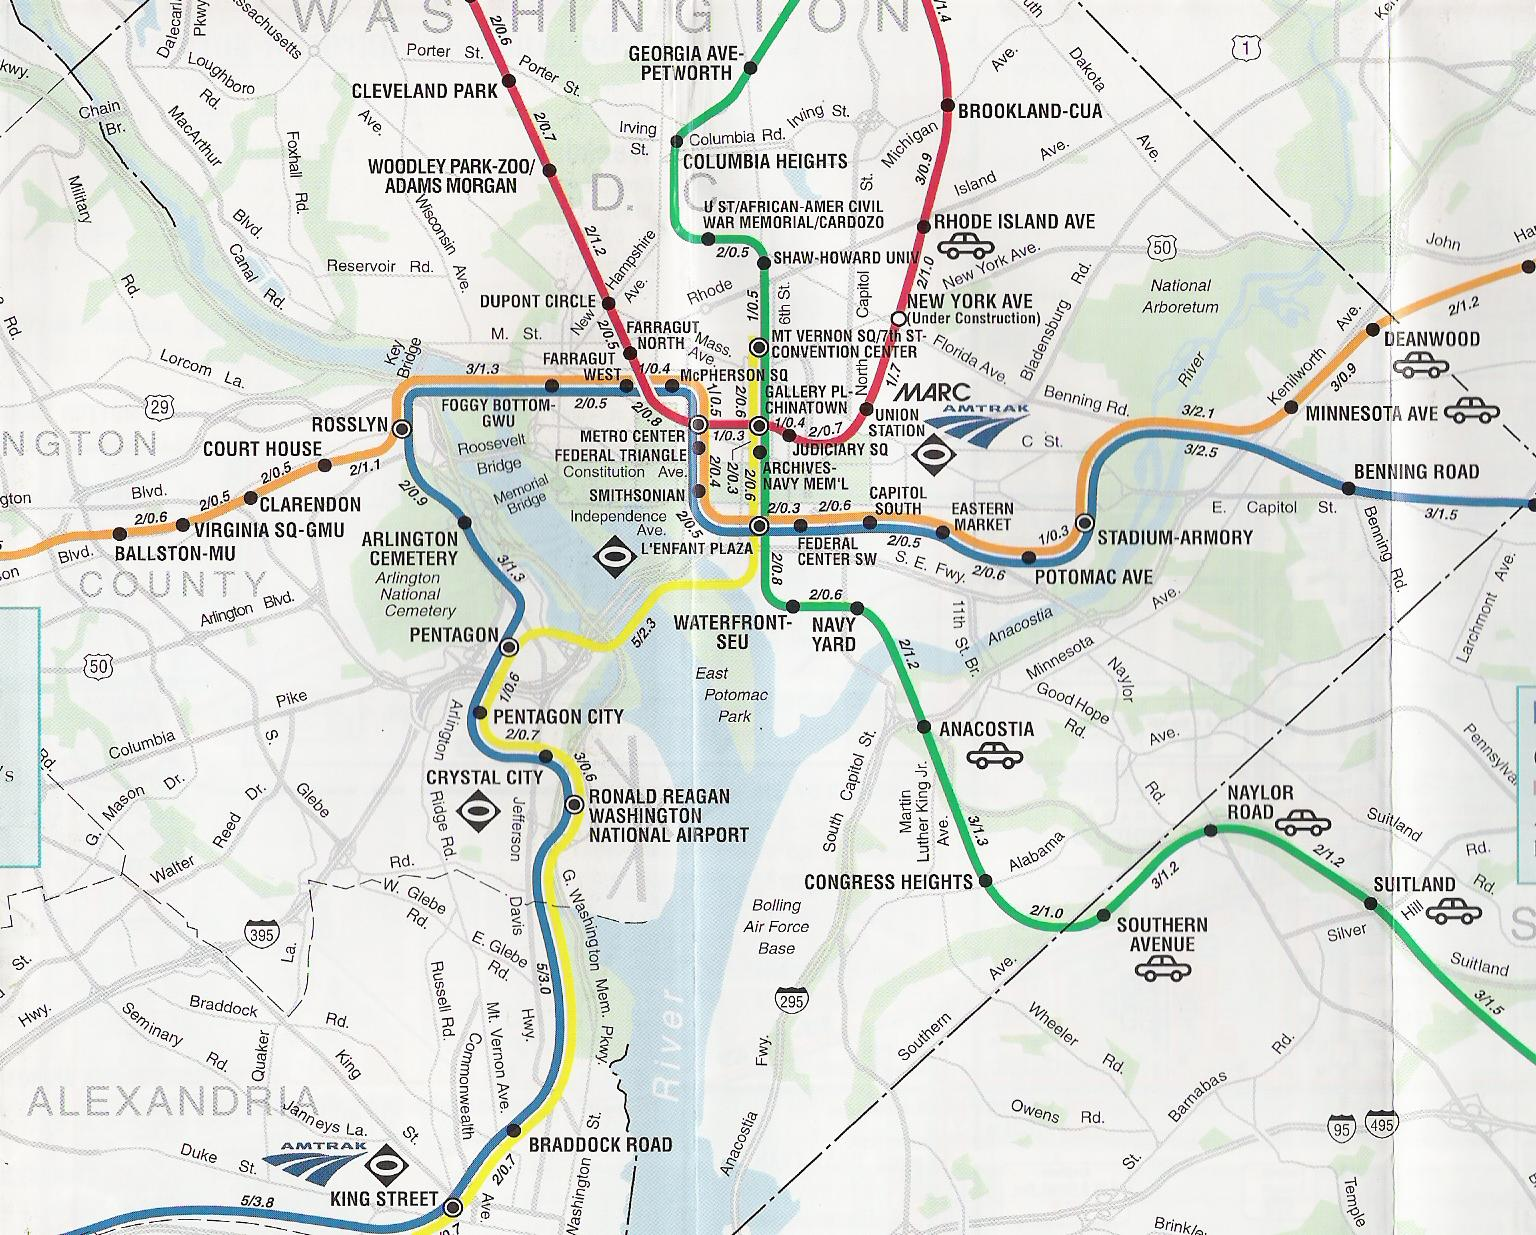 counties of va map with Dc Subway Map on Columbusmetro likewise Virginia Airports also San Francisco likewise Regions Chapters moreover Dc Subway Map.